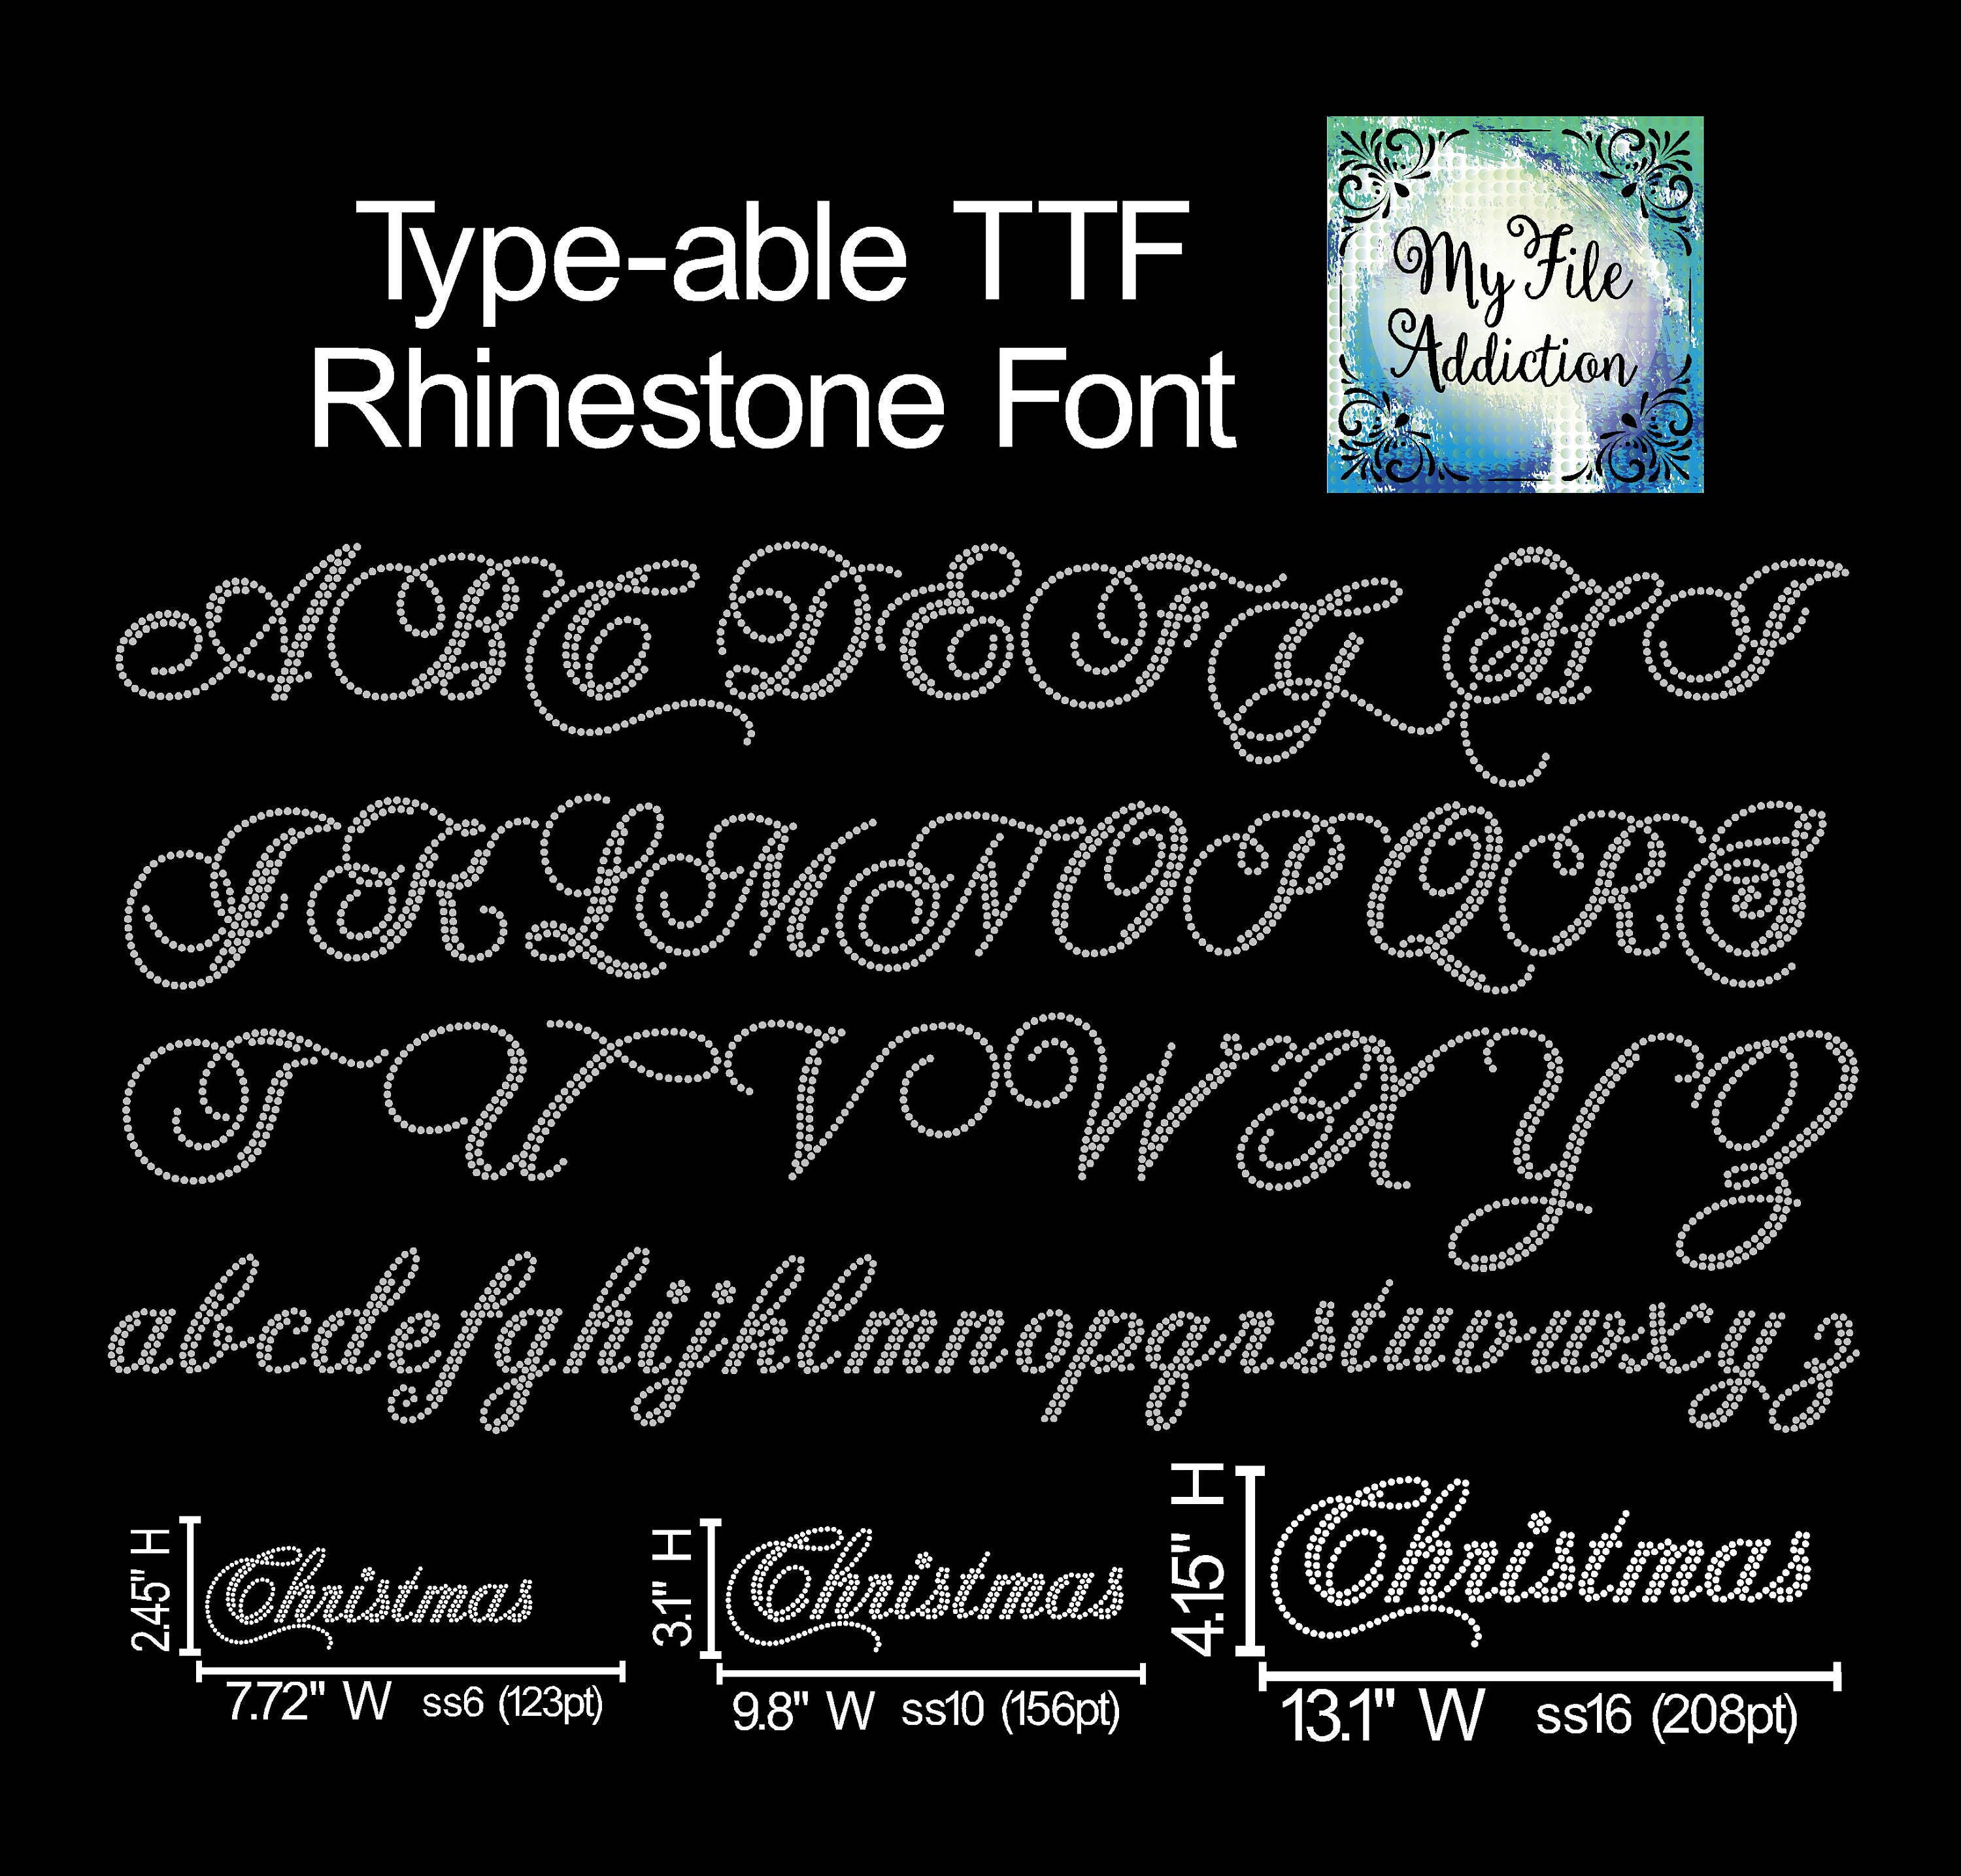 Similar Free Fonts for Able-New